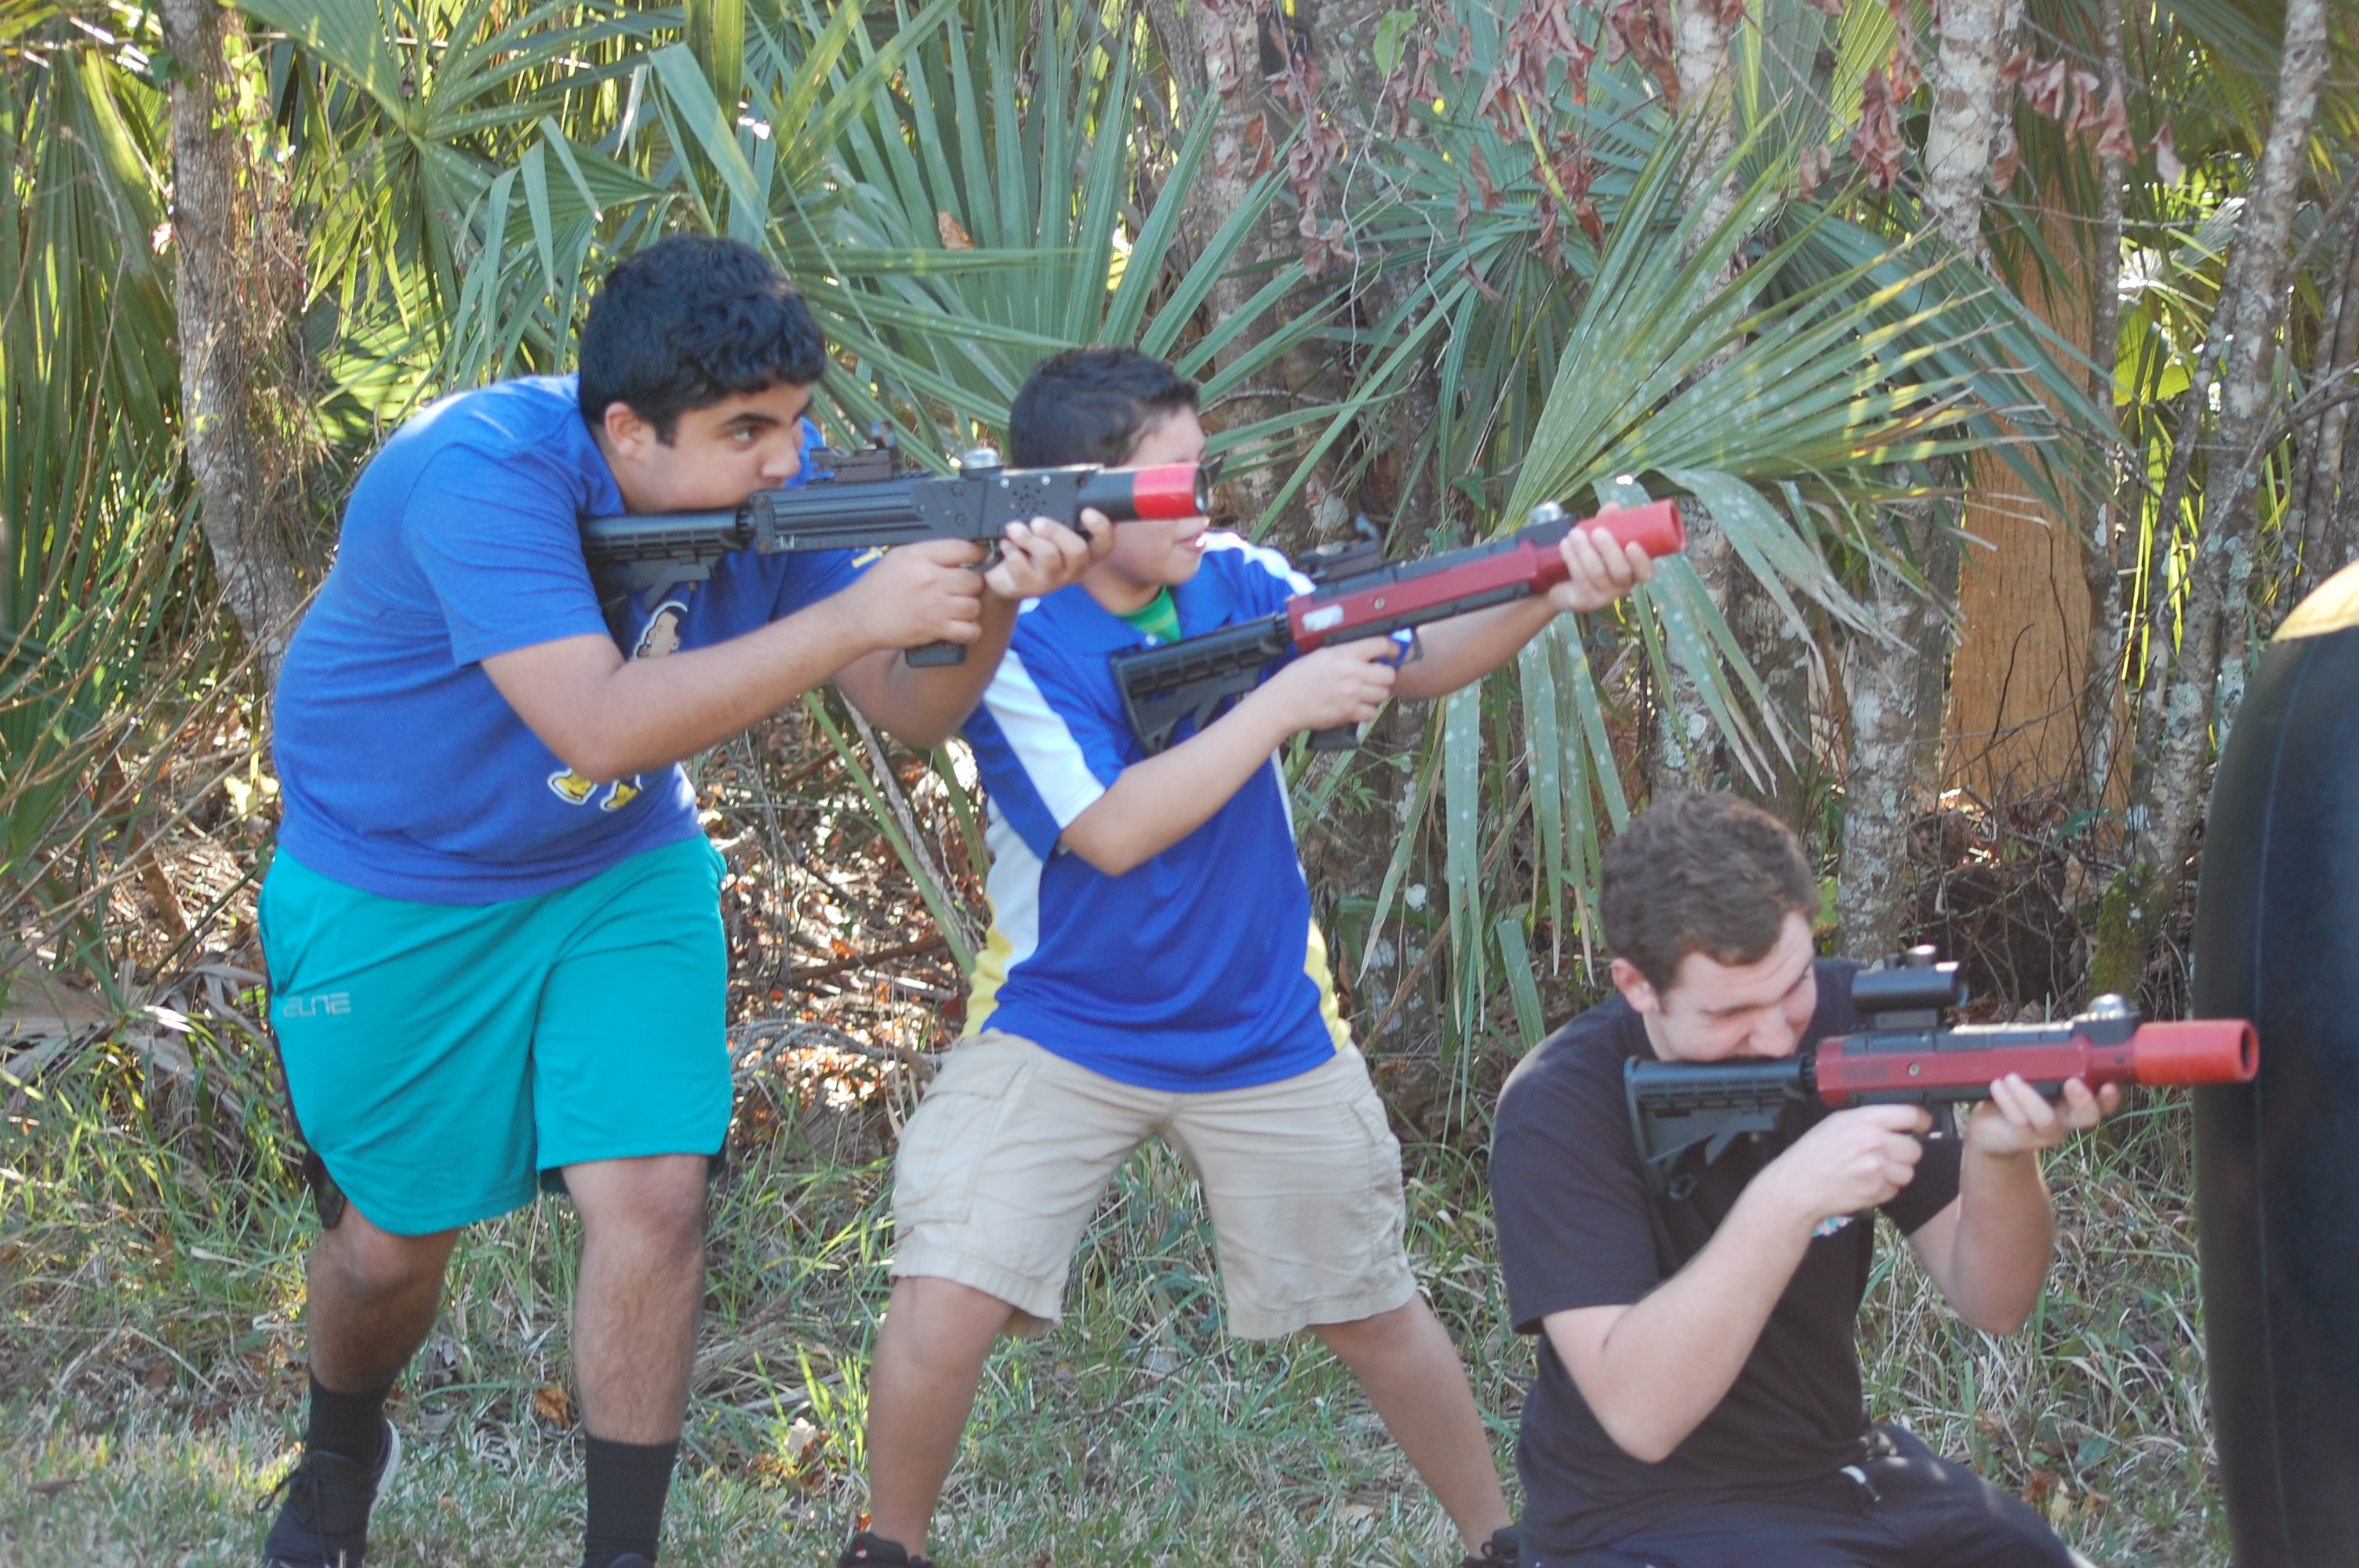 Mobile Laser Tag in Celebration, FL